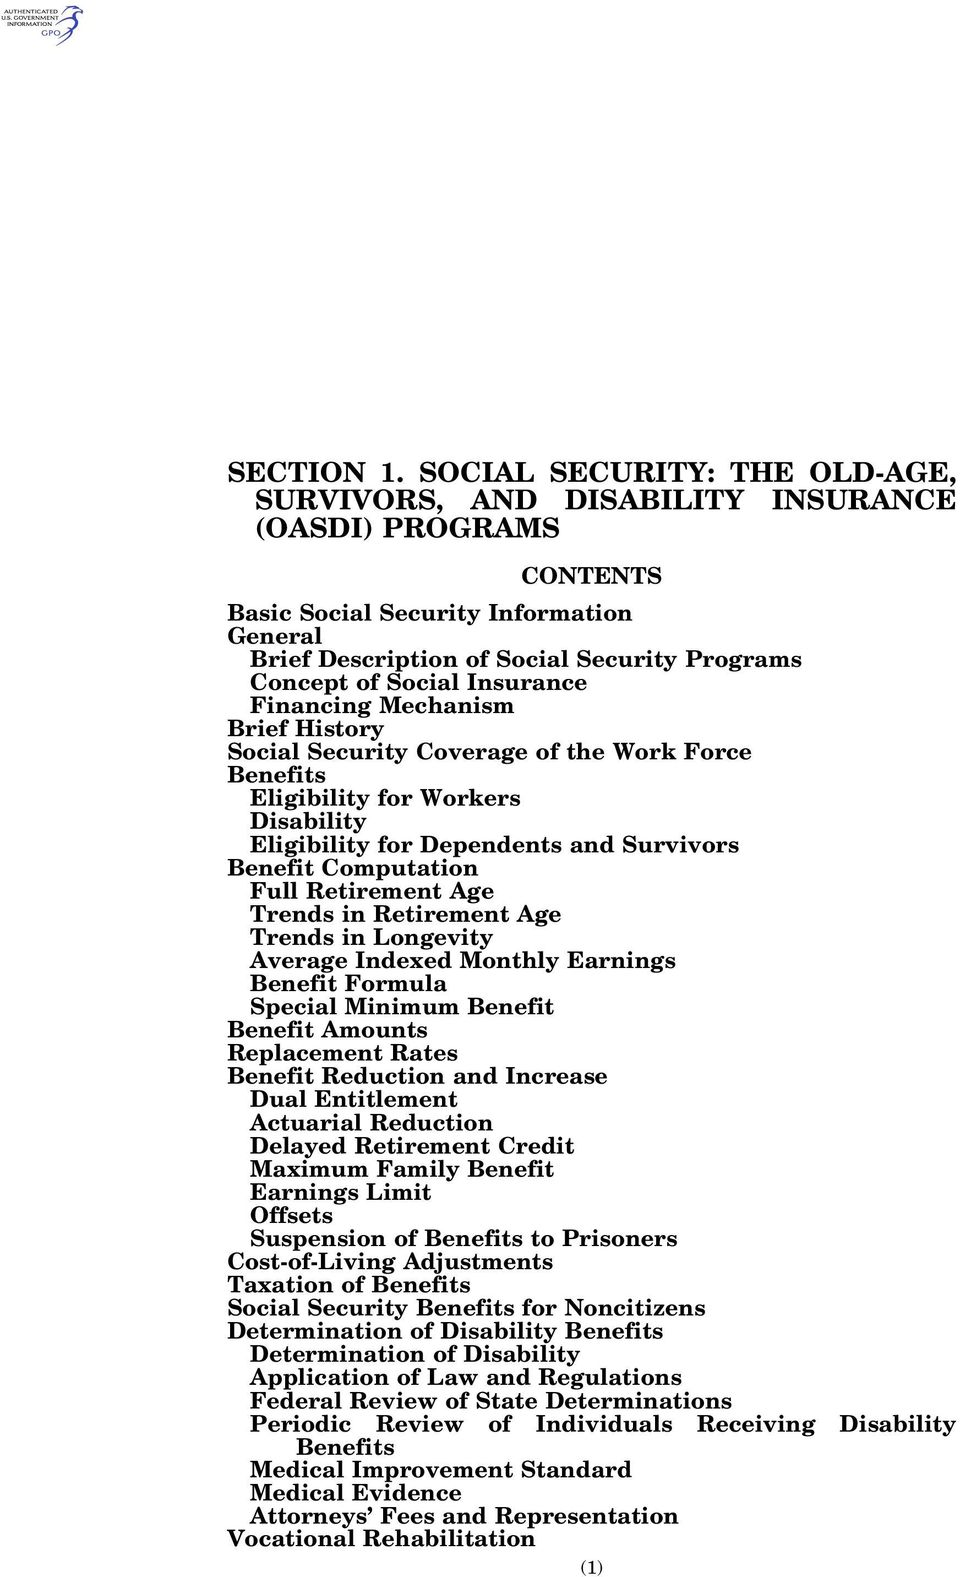 Insurance Financing Mechanism Brief History Social Security Coverage of the Work Force Benefits Eligibility for Workers Disability Eligibility for Dependents and Survivors Benefit Computation Full